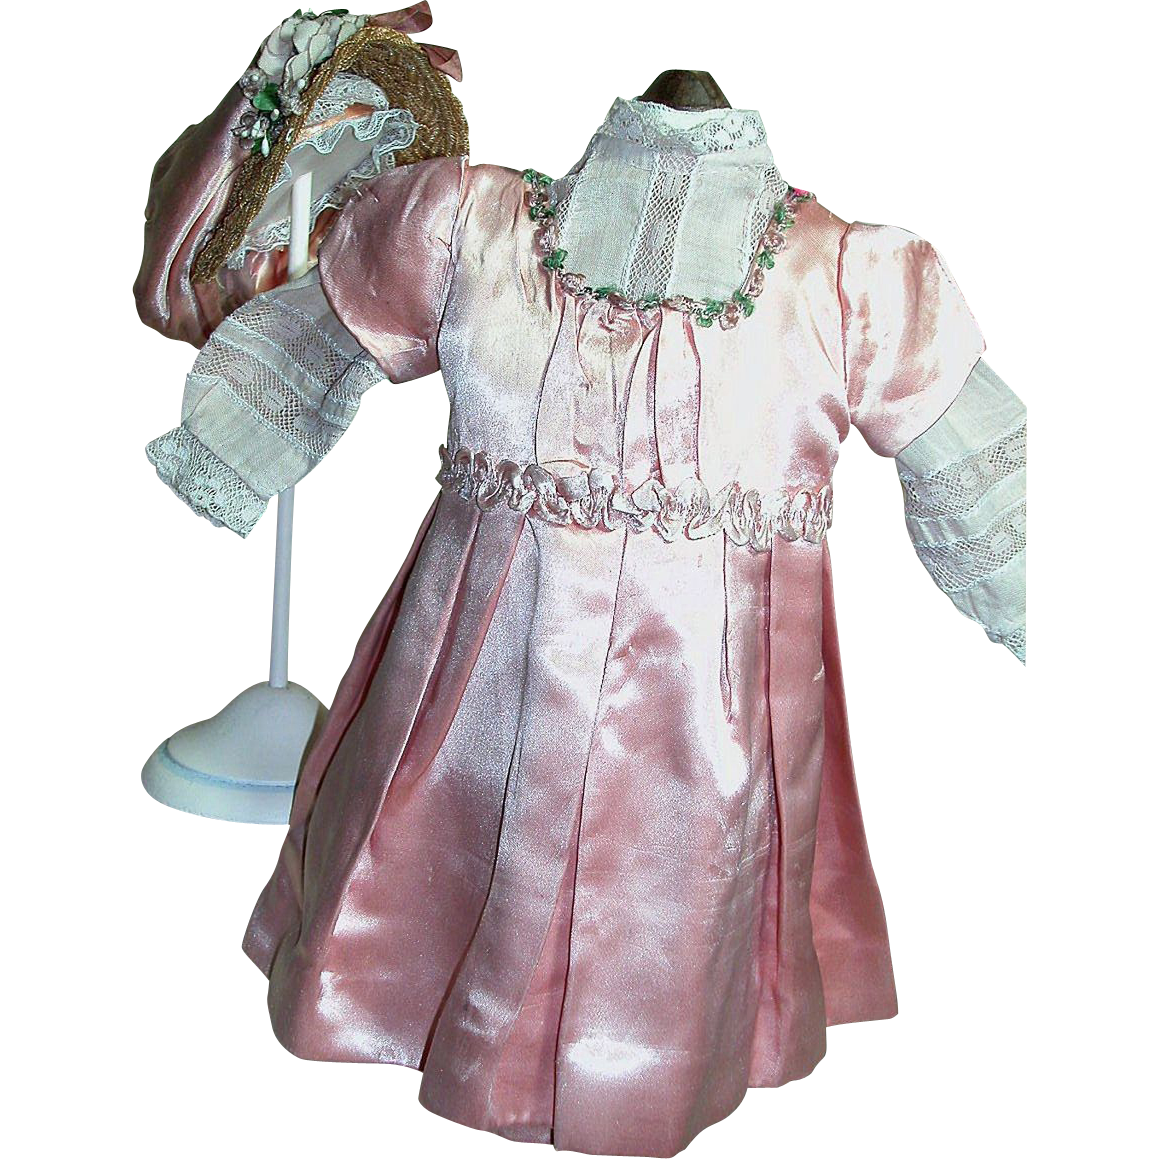 Old French Bebe Rose Satin Dress blouse u0026 Hat Outfit 10u0026quot; long SOLD on Ruby Lane